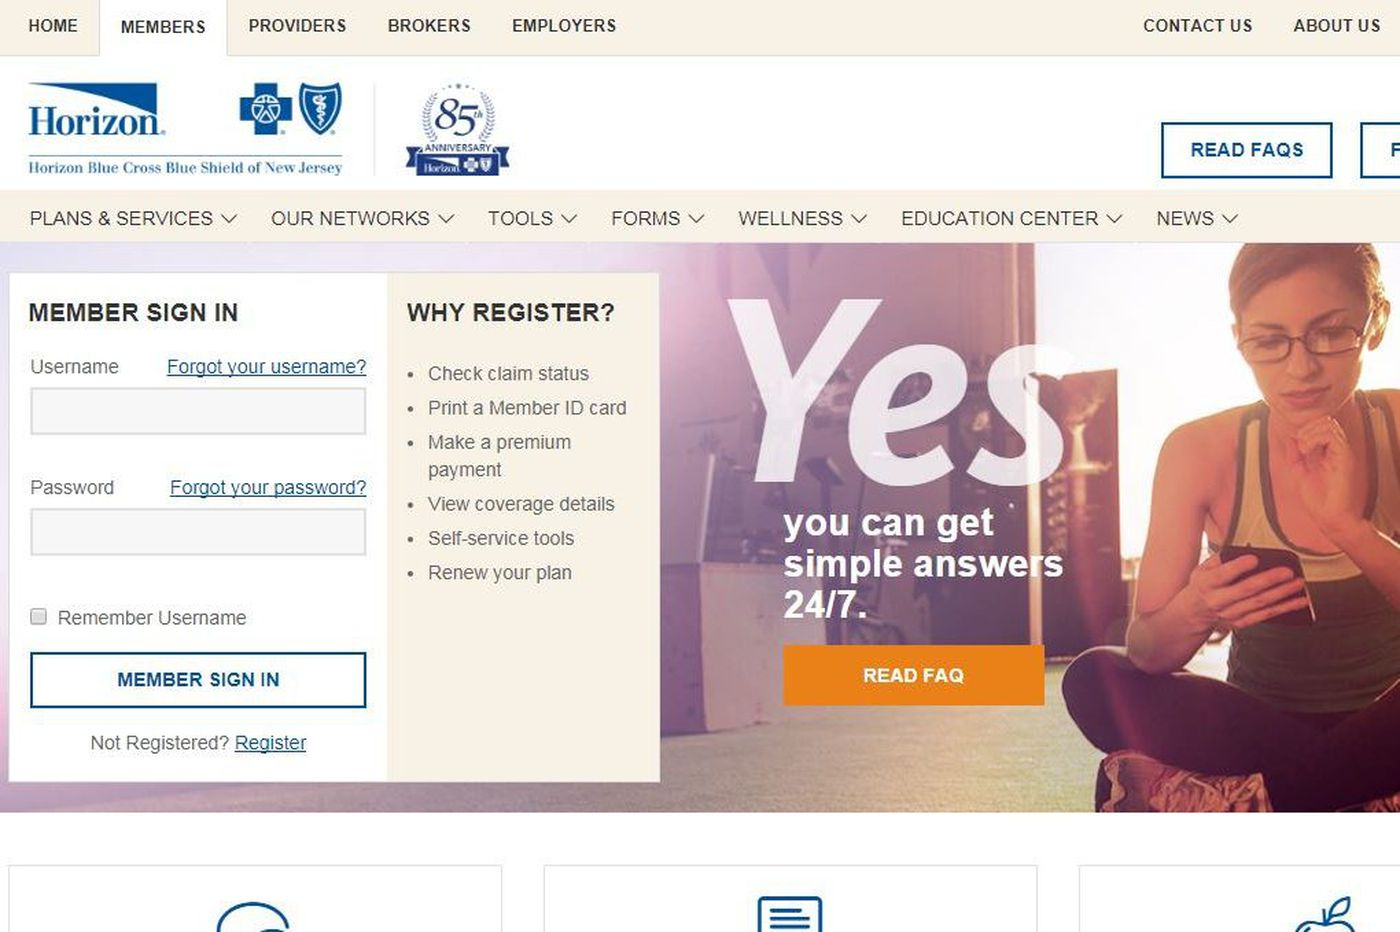 Horizon Blue Cross ordered to turn over Omnia documents